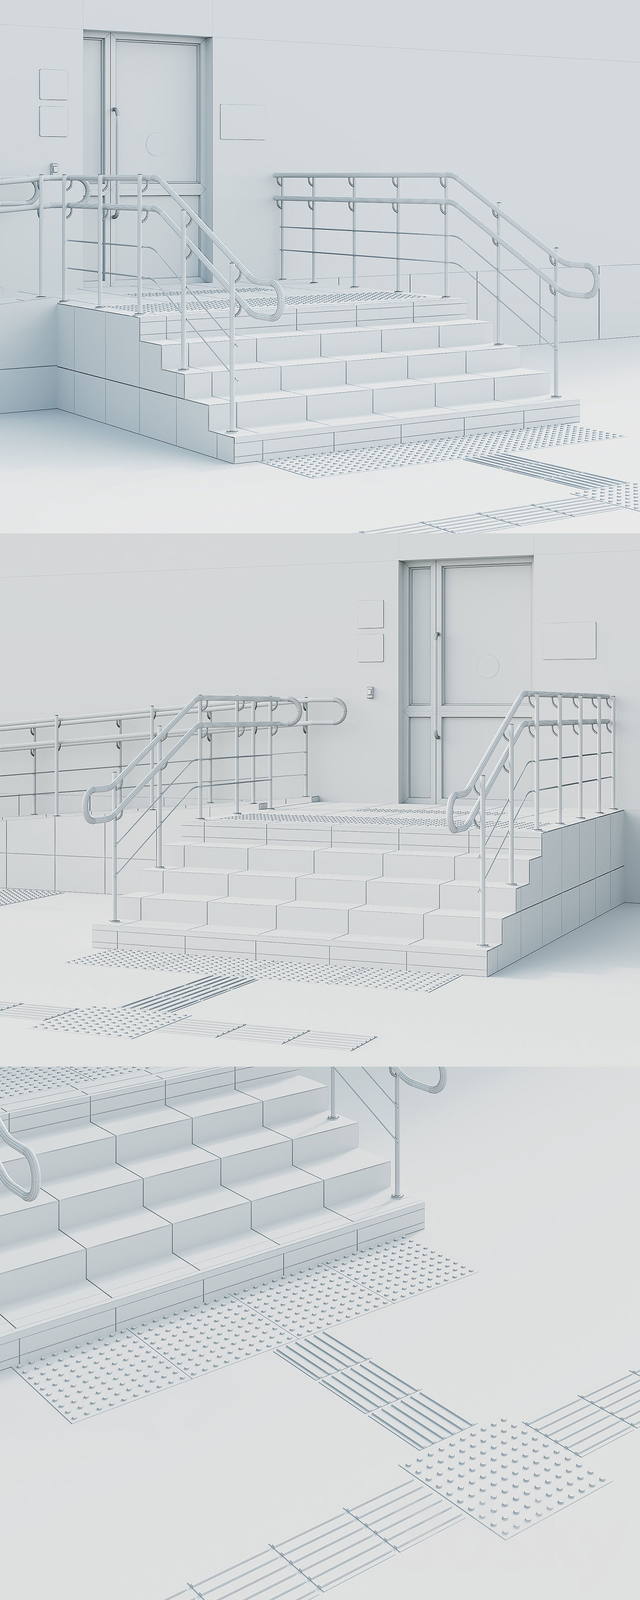 Adaptation of the entrance to the building for the disabled